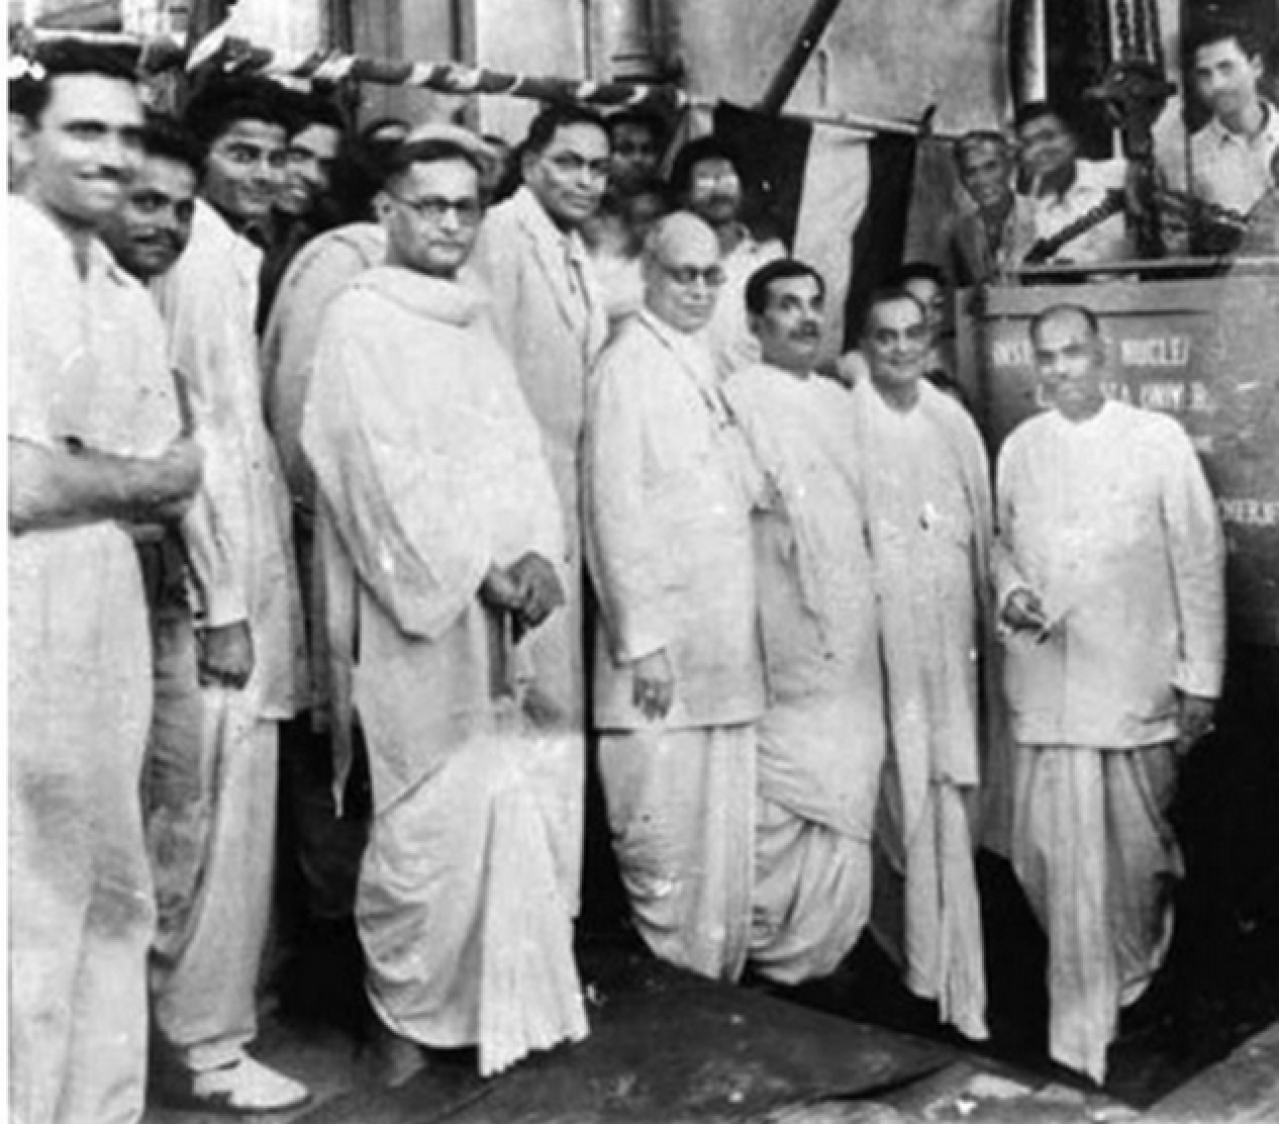 Dr Mookerjee laying the foundation for India's first nuclear institution. Dr Saha is standing nearby.